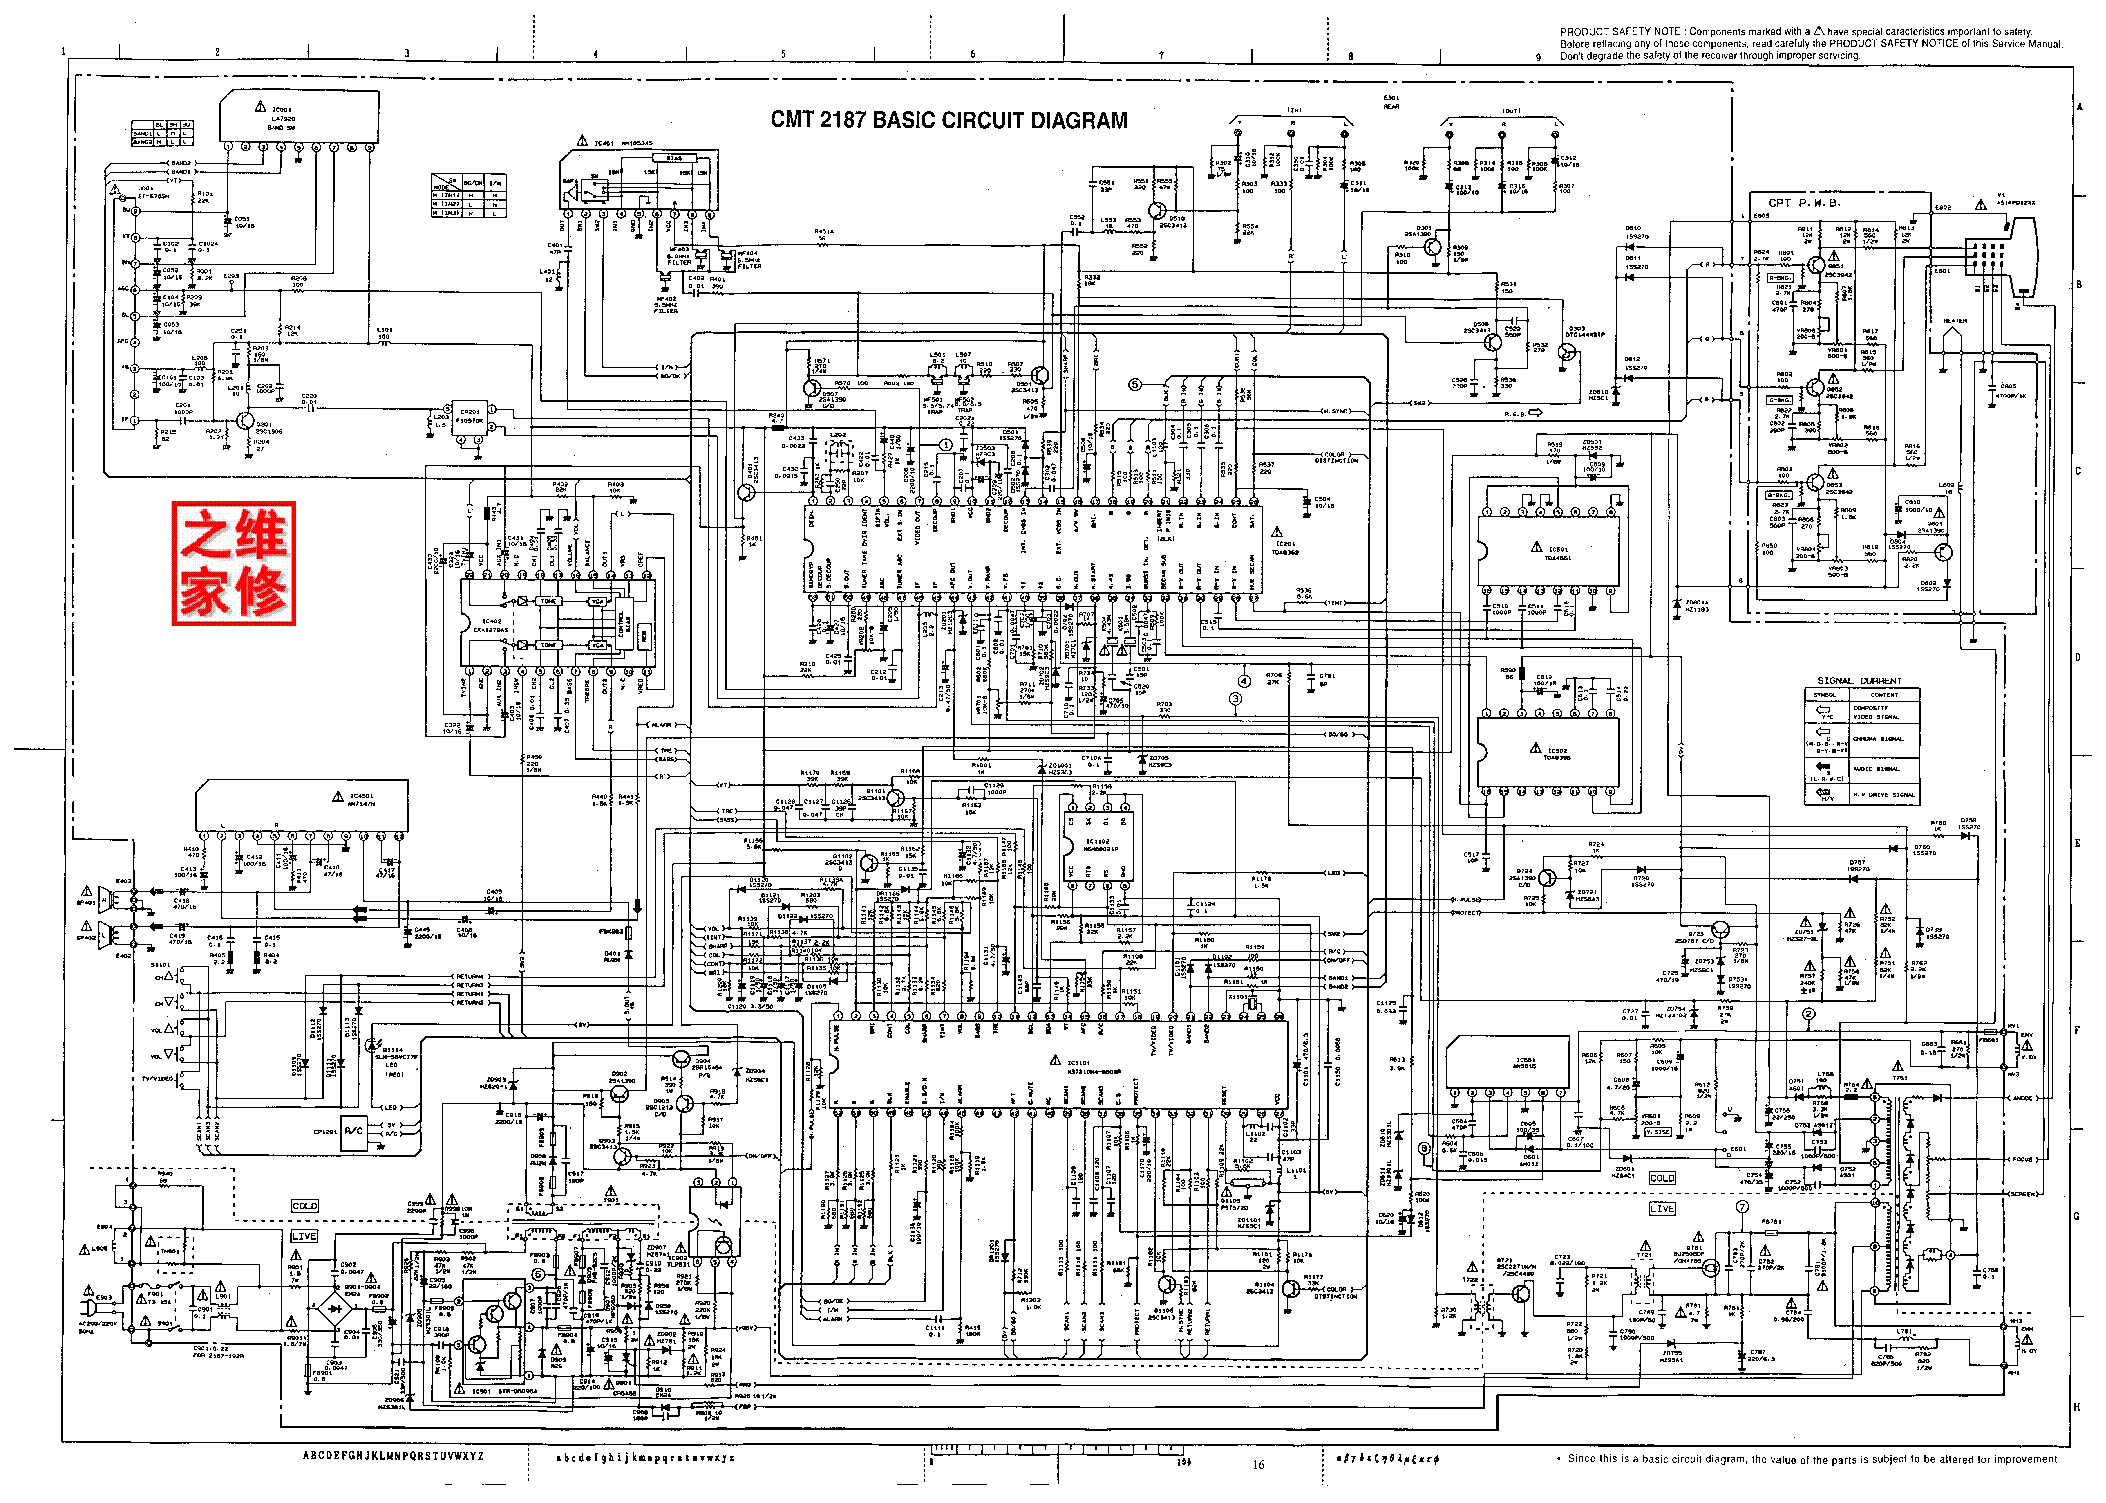 Hitachi Air Conditioner Wiring Diagram : Hitachi cmt basic circuit diagram service manual